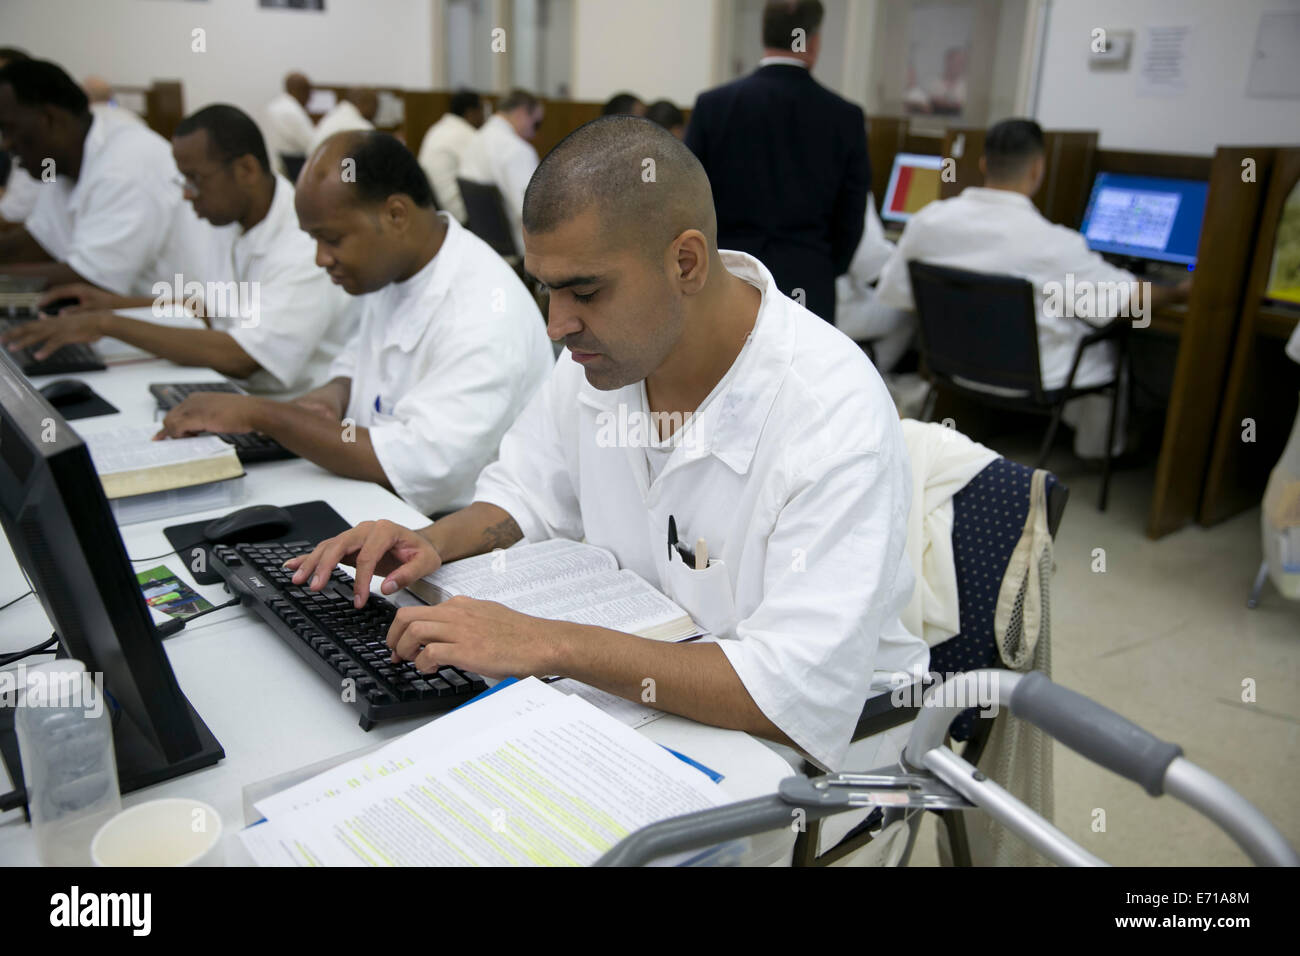 Male inmate students who are enrolled in the Southwestern Baptist Theological Seminary program at Darrington prison - Stock Image